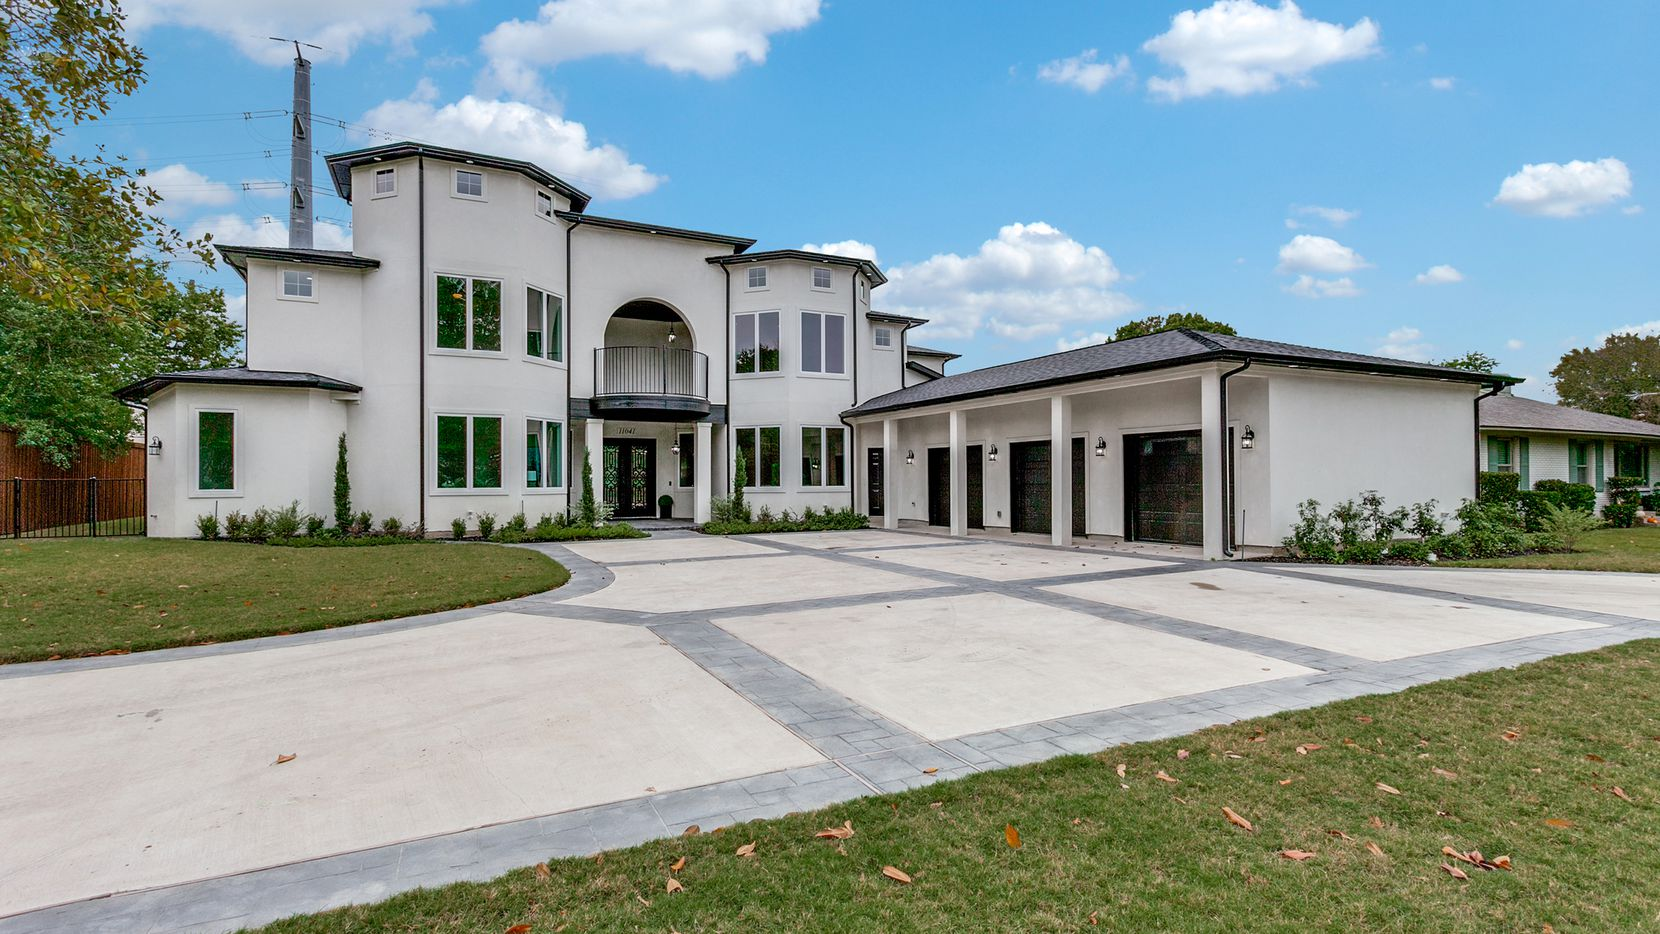 The newly constructed residence at 11041 Lawnhaven Road is on the Northaven Trail.